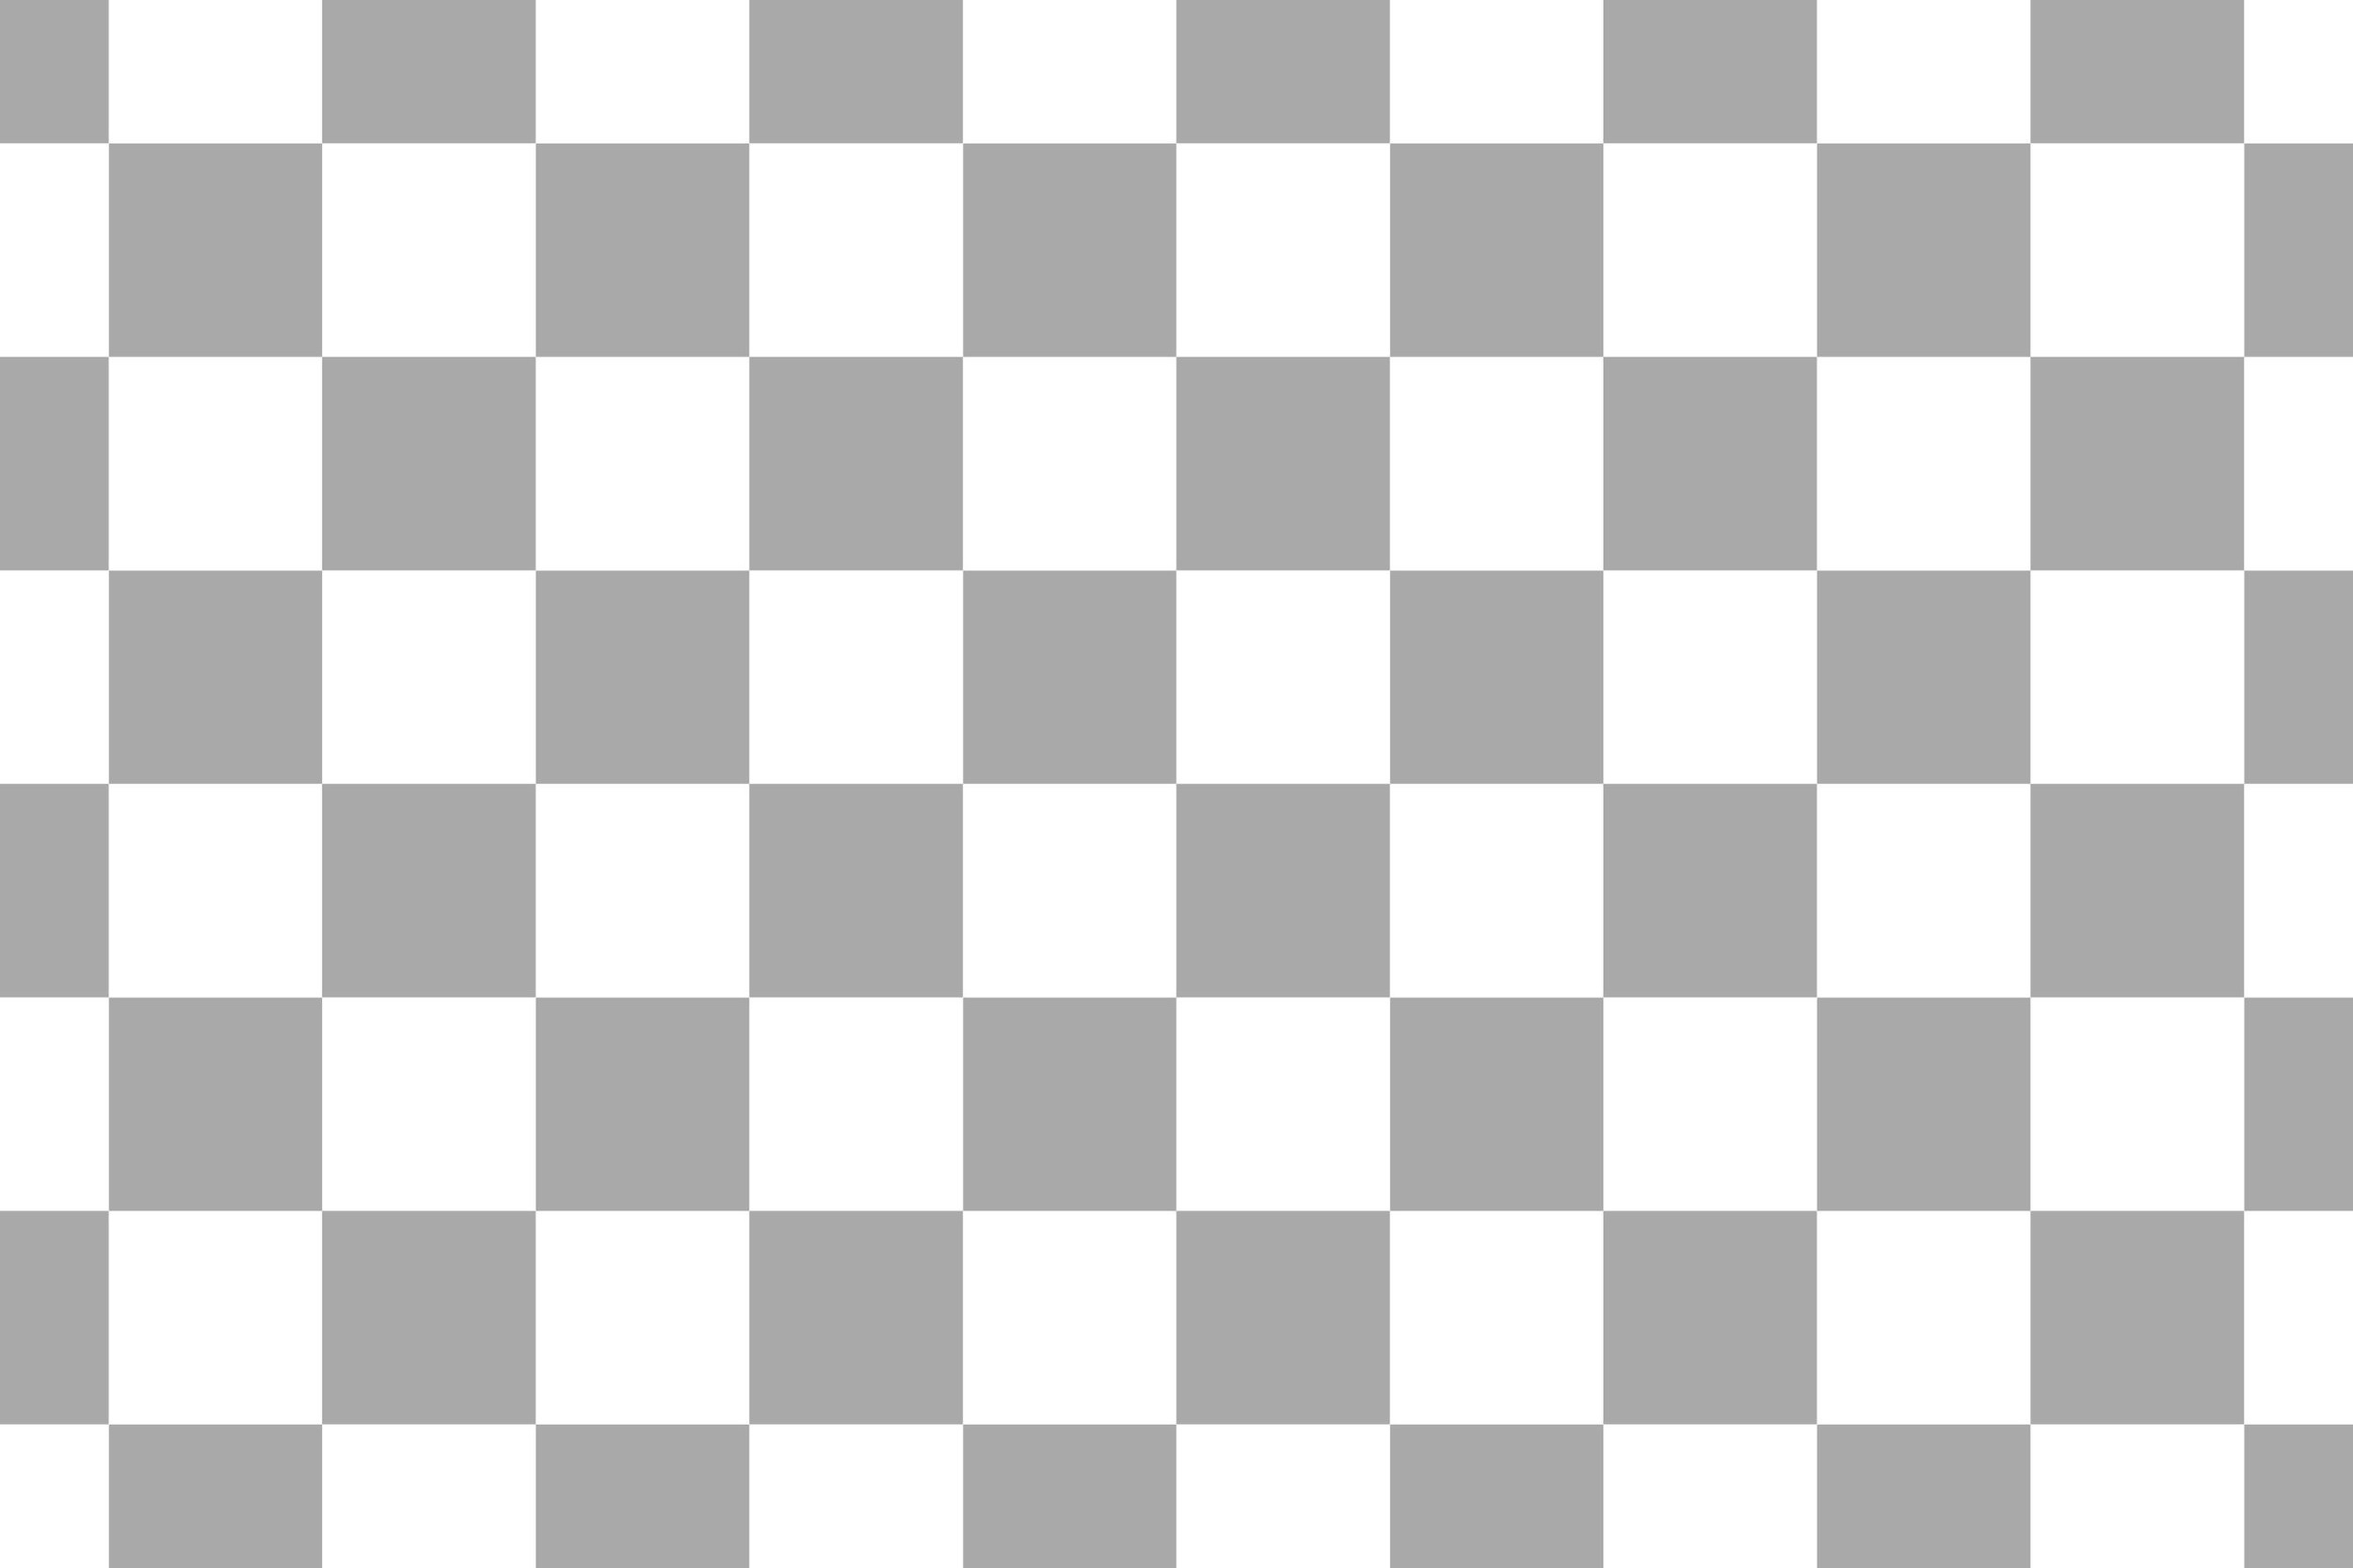 grey-white-checkered-squares-1920x1080-c2-a9a9a9-ffffff-l-70-a-0-f-2.jpg